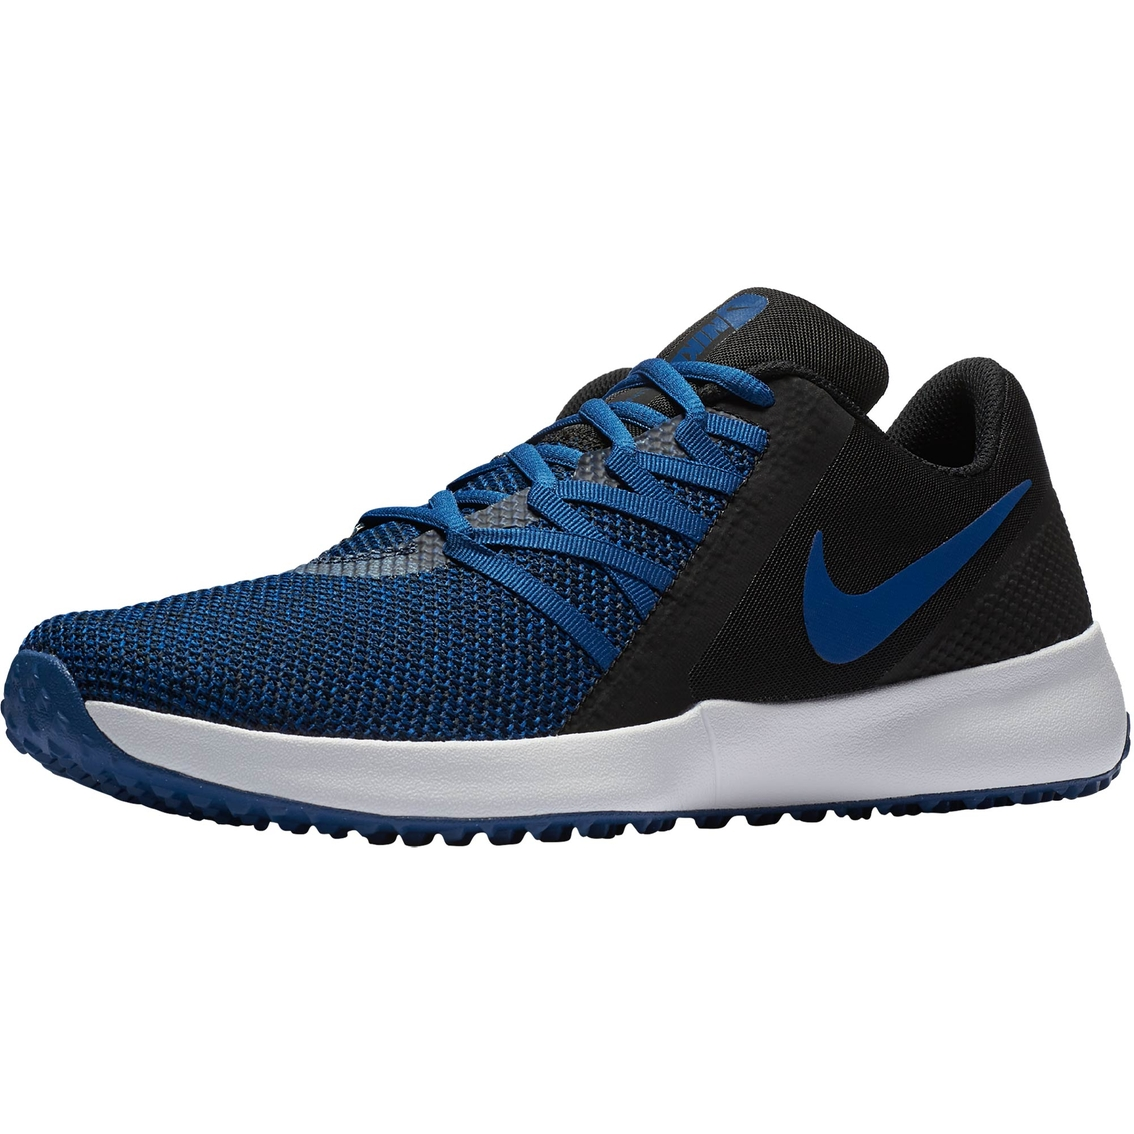 Varsity Compete Trainer Training Shoes